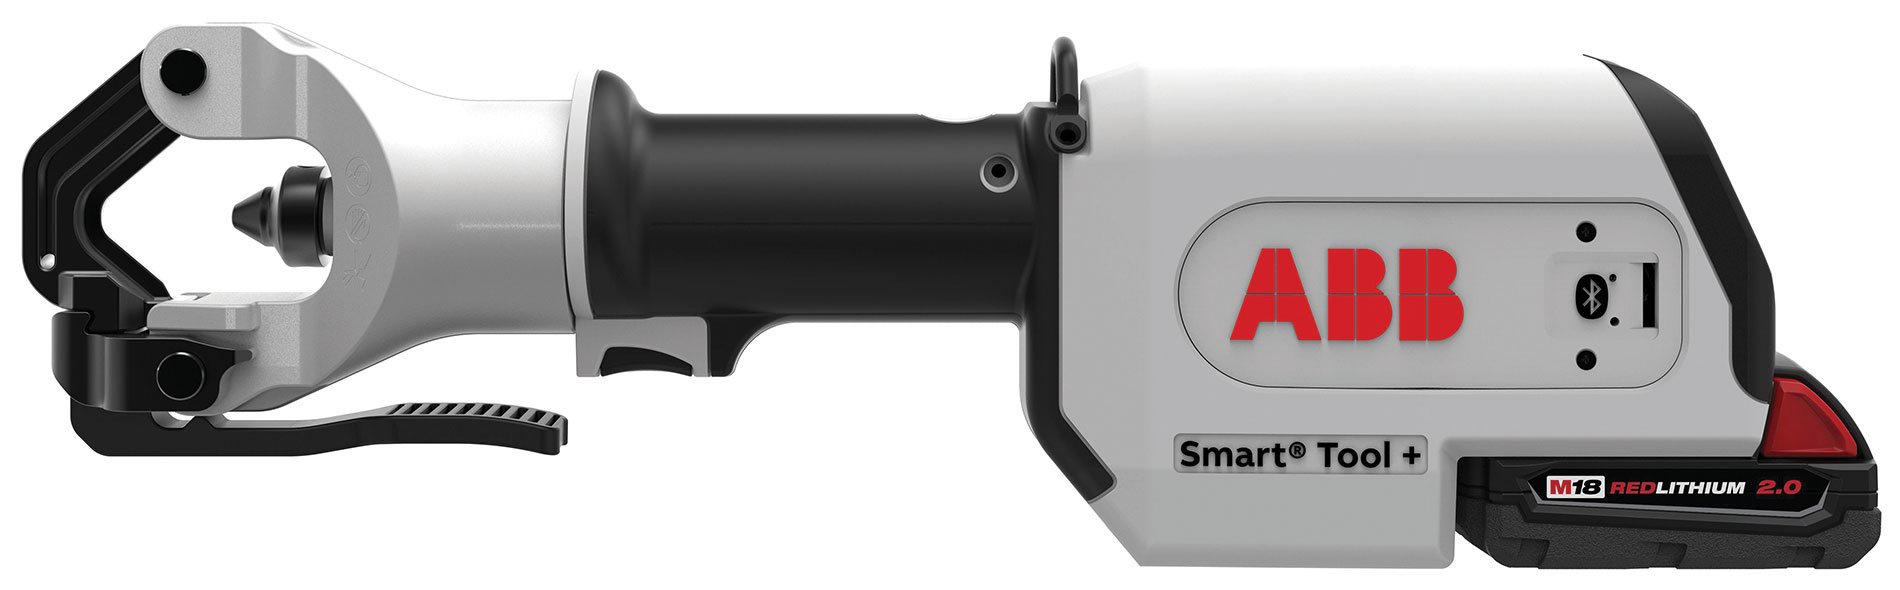 ABB's Bluetooth-enabled, dieless Smart Tool+ crimping tool uses an RFID reader  to verify successful crimps and can store data to improve safety.